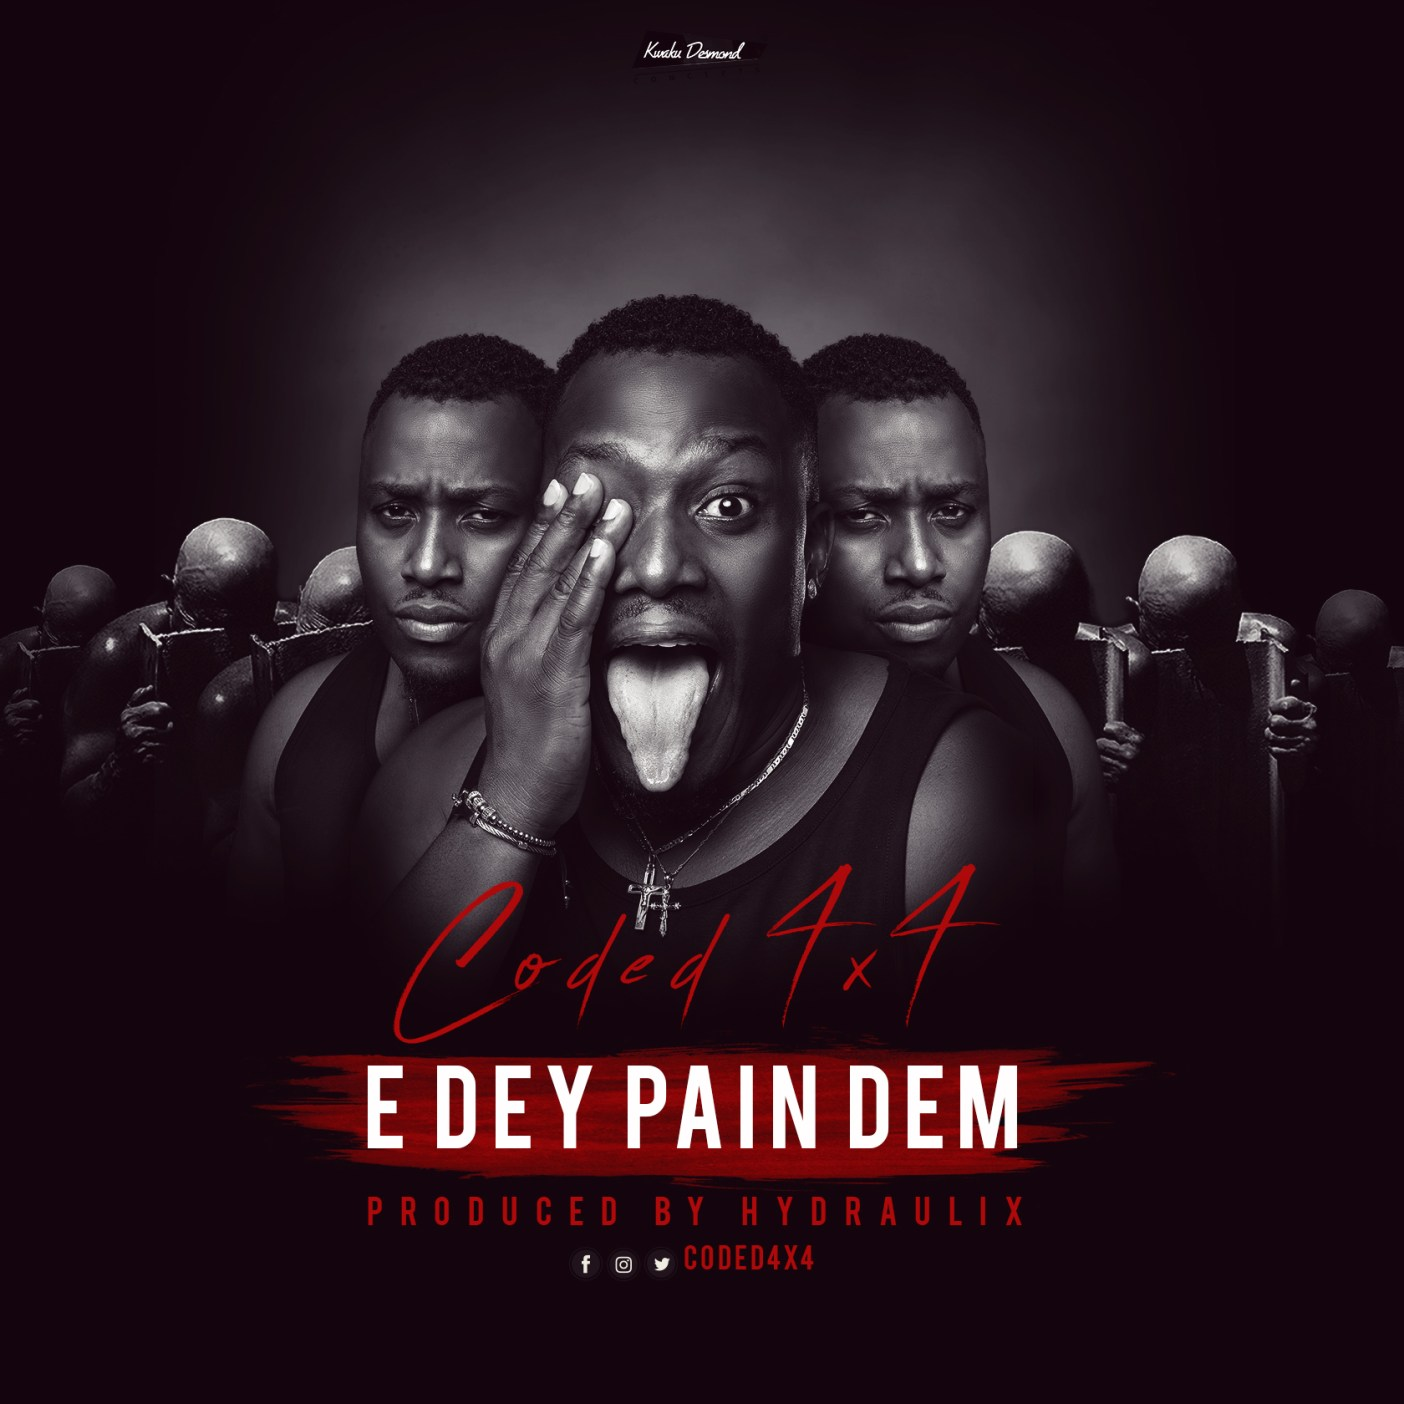 Coded4x4 – Edey Pain Dem (Prod. By Hydraulix)